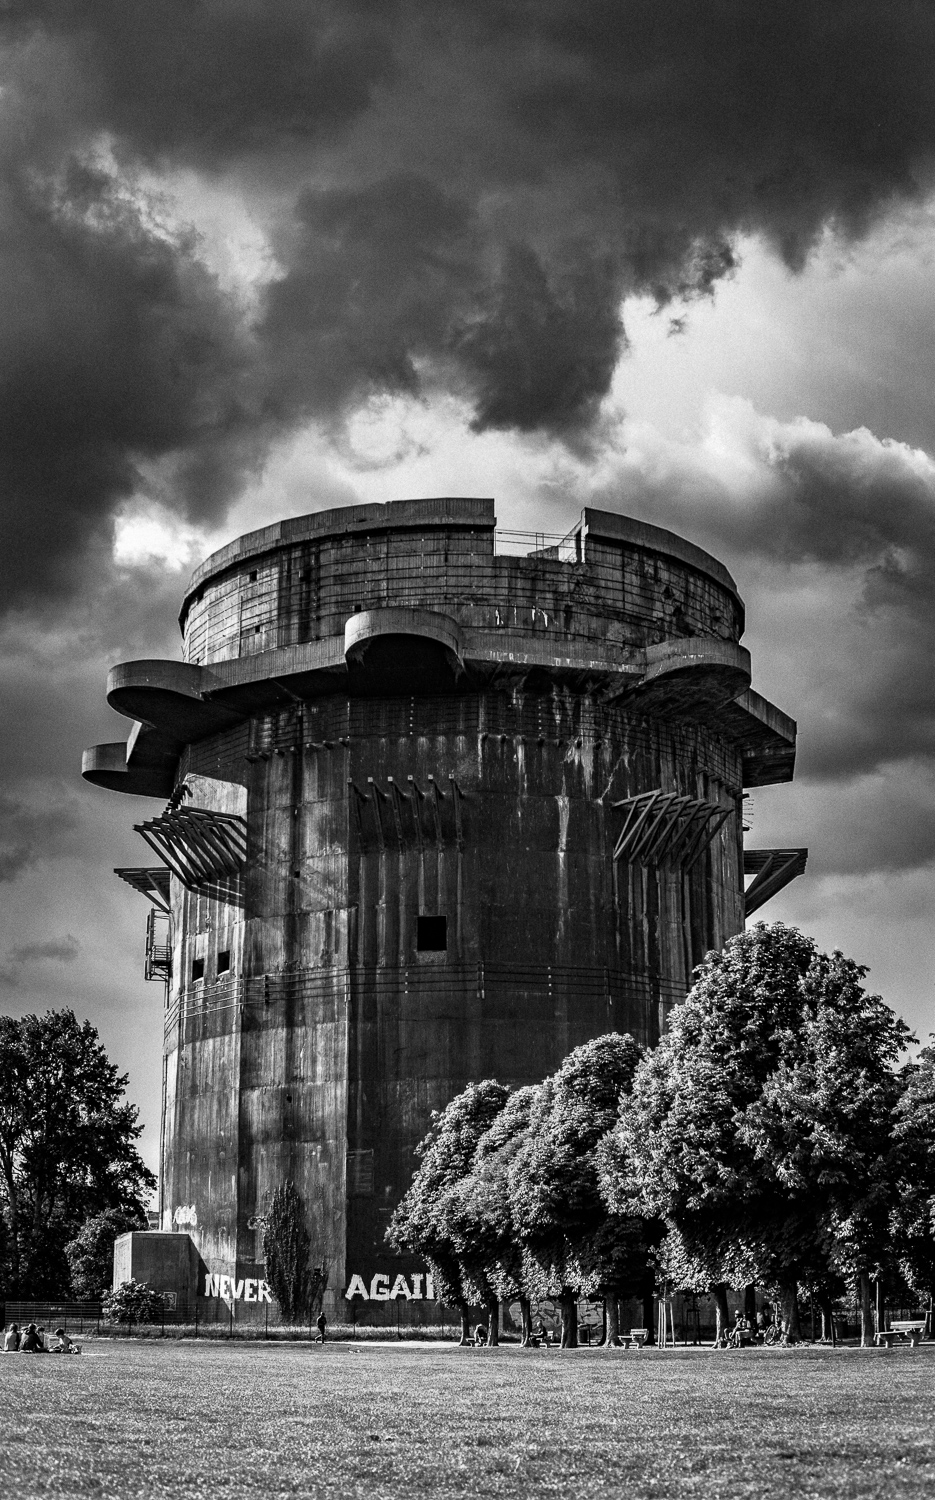 A storm rolling in over the old flak tower in Vienna. They mounted anti-aircraft guns here during the war.. The reinforced concrete walls are 11 feet thick in some places and, with all guns engaged, it could put 8,000 rounds per minute into the air.